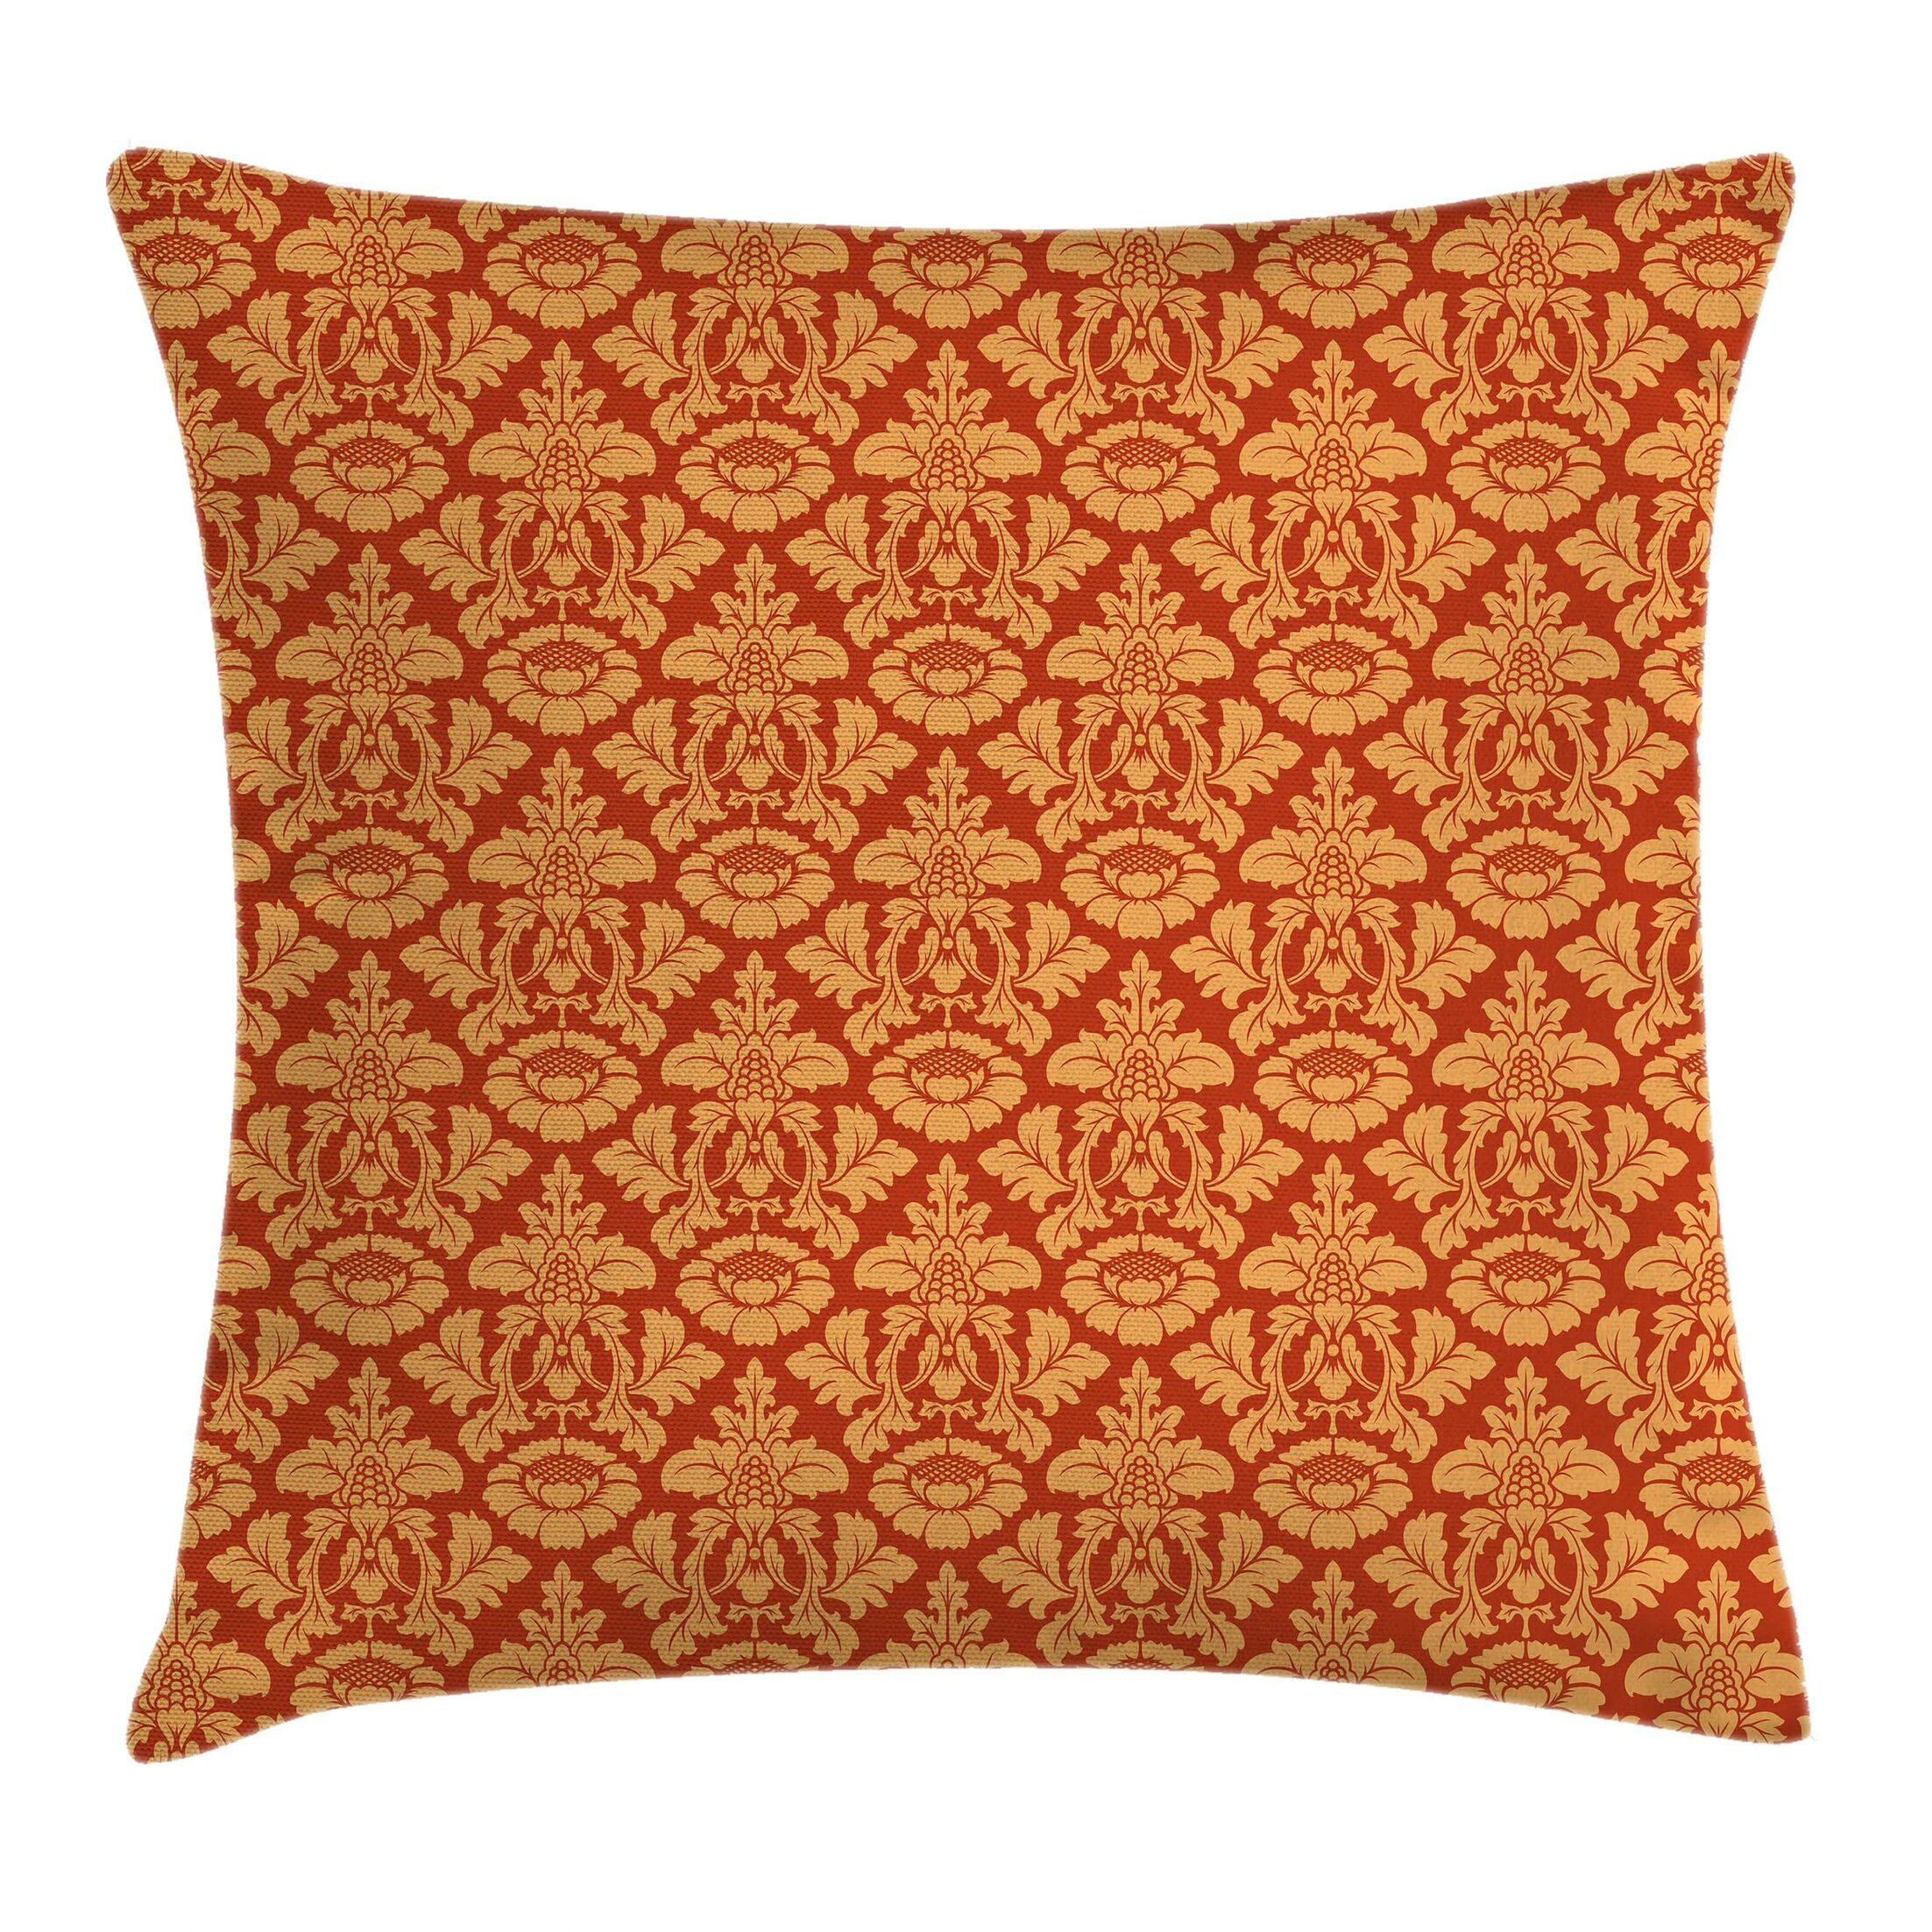 Antique Royal Victorian Damask Square Pillow Cover Size: 18